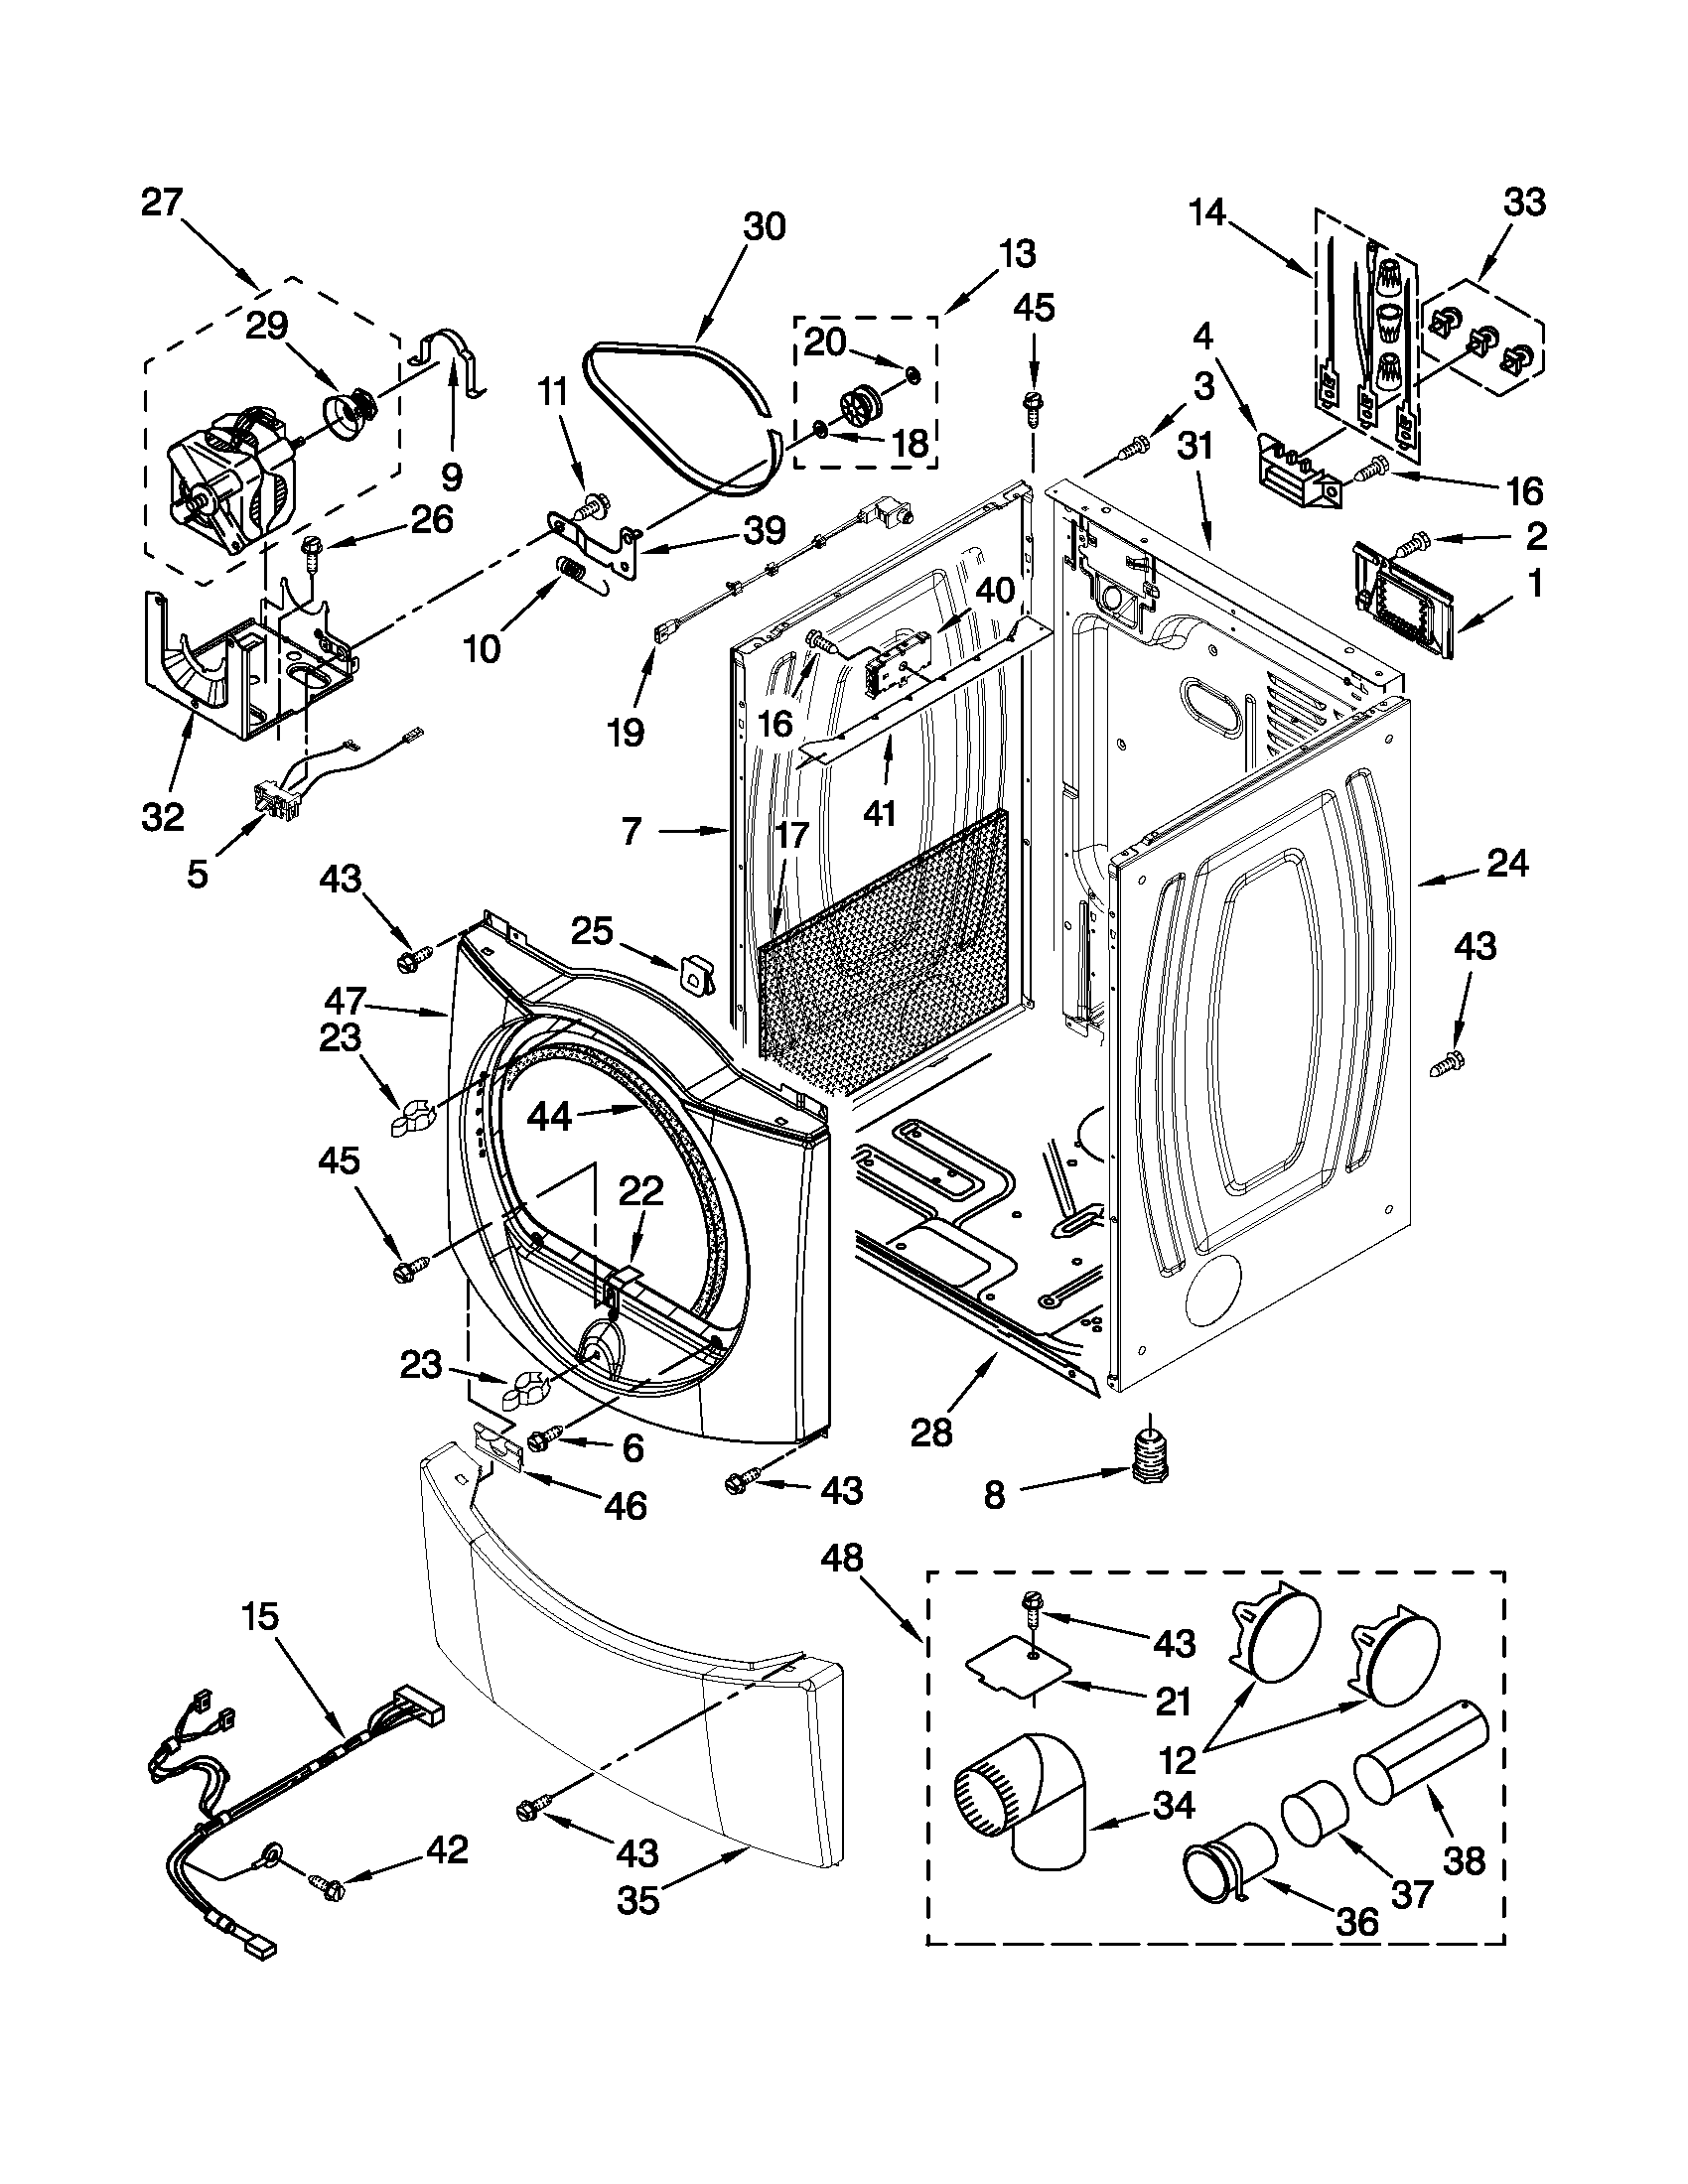 Whirlpool WED9610XW0 cabinet parts diagram